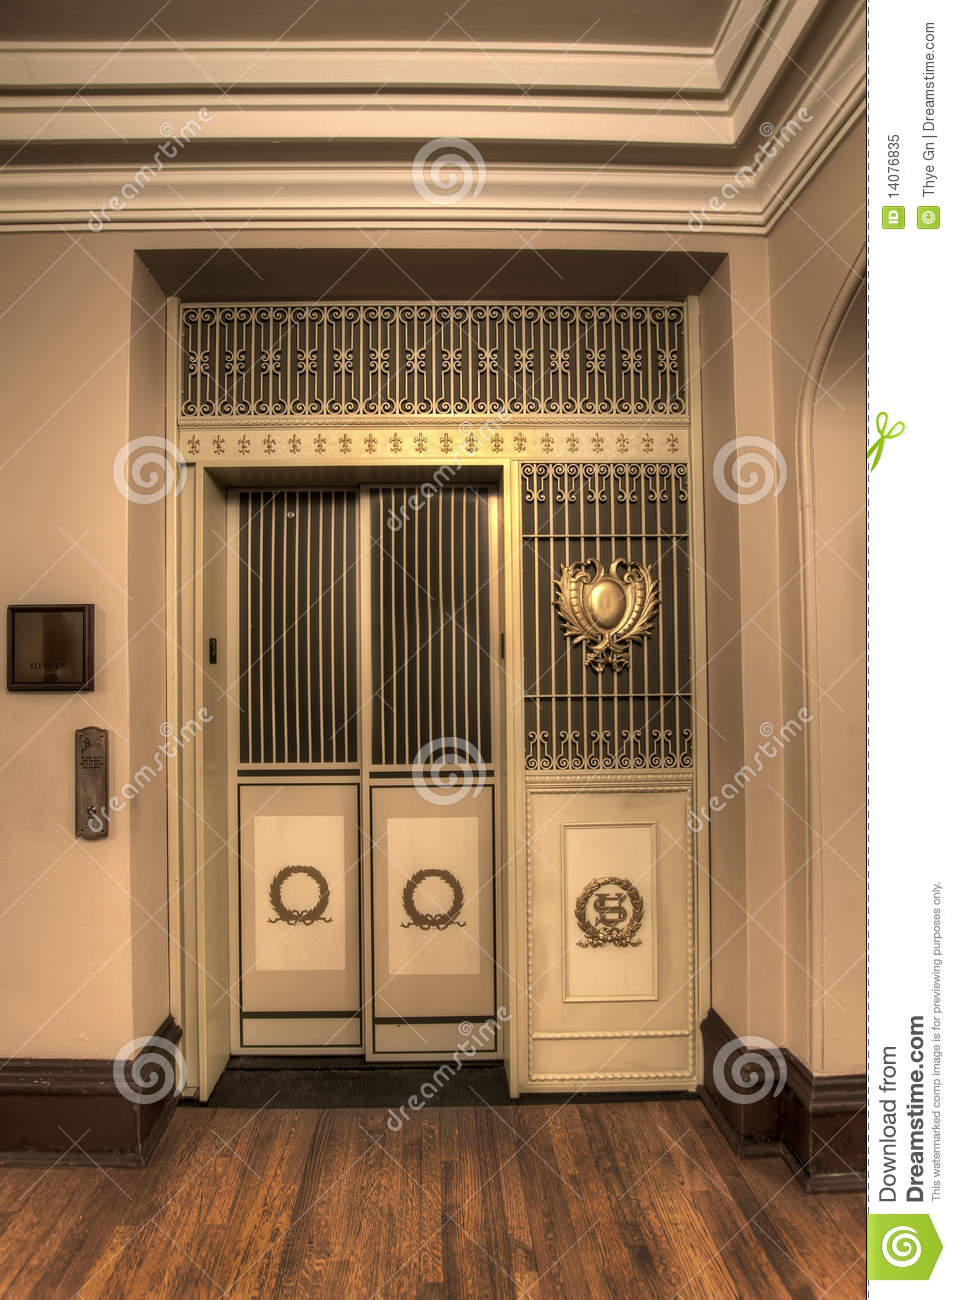 Old antique elevator stock image image of portland for Ascenseur maison prix